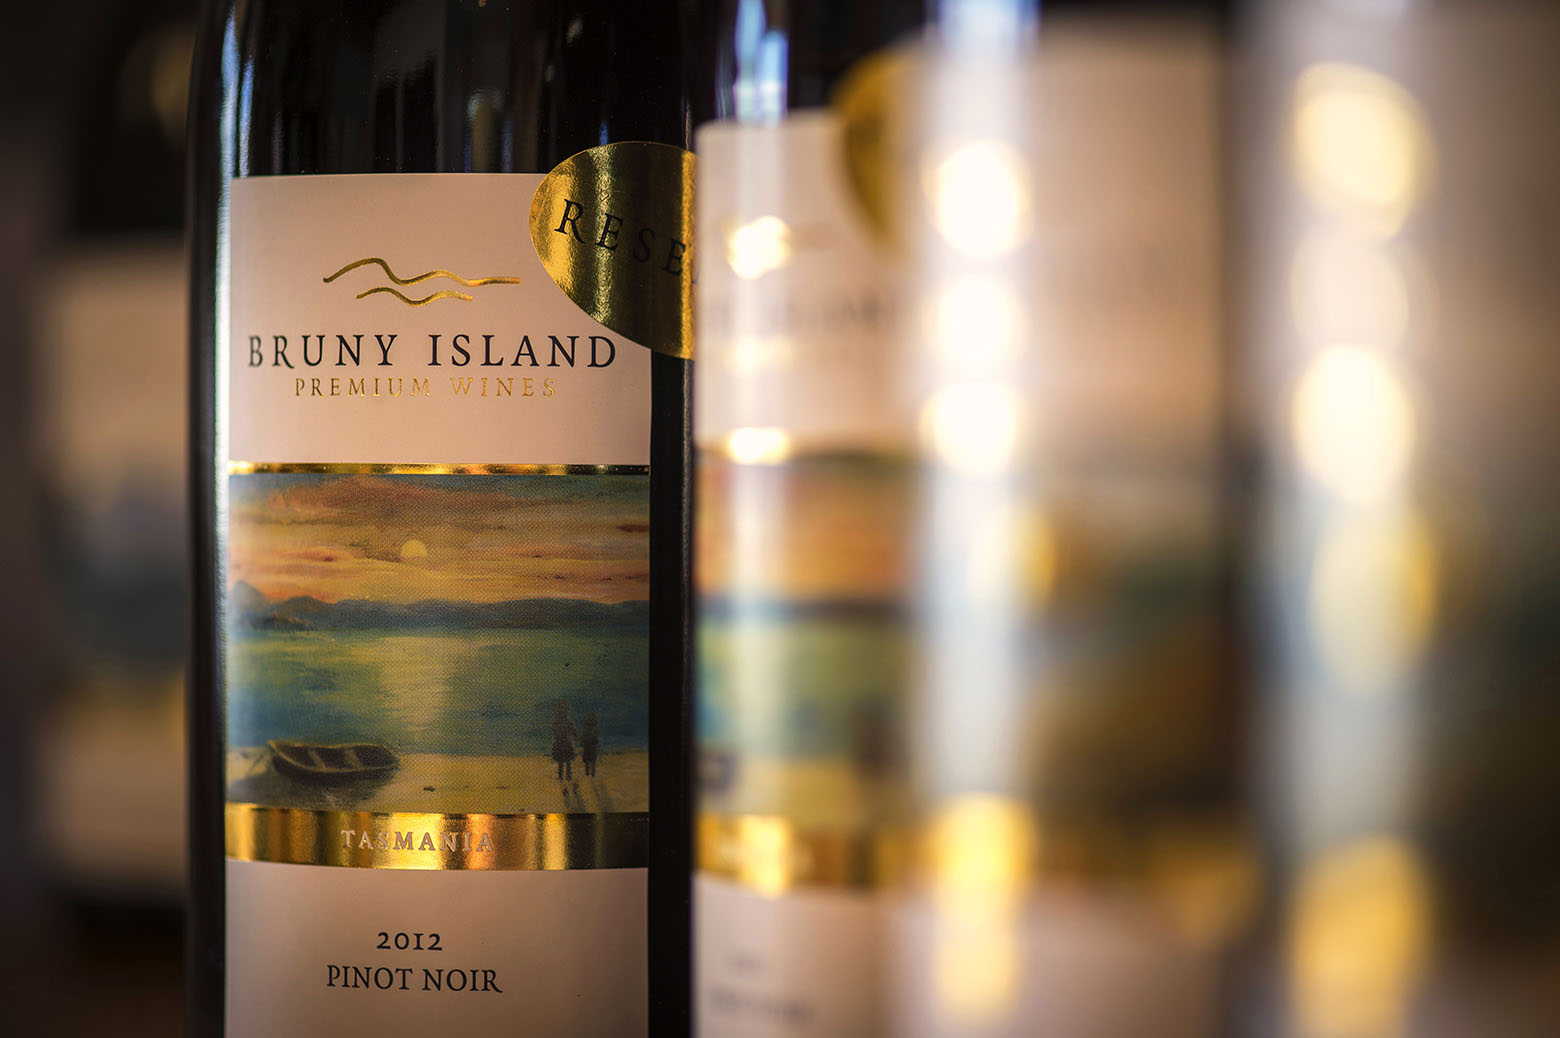 Taste Bruny Island Peremium Wines on Bruny Island Tours from Hobart